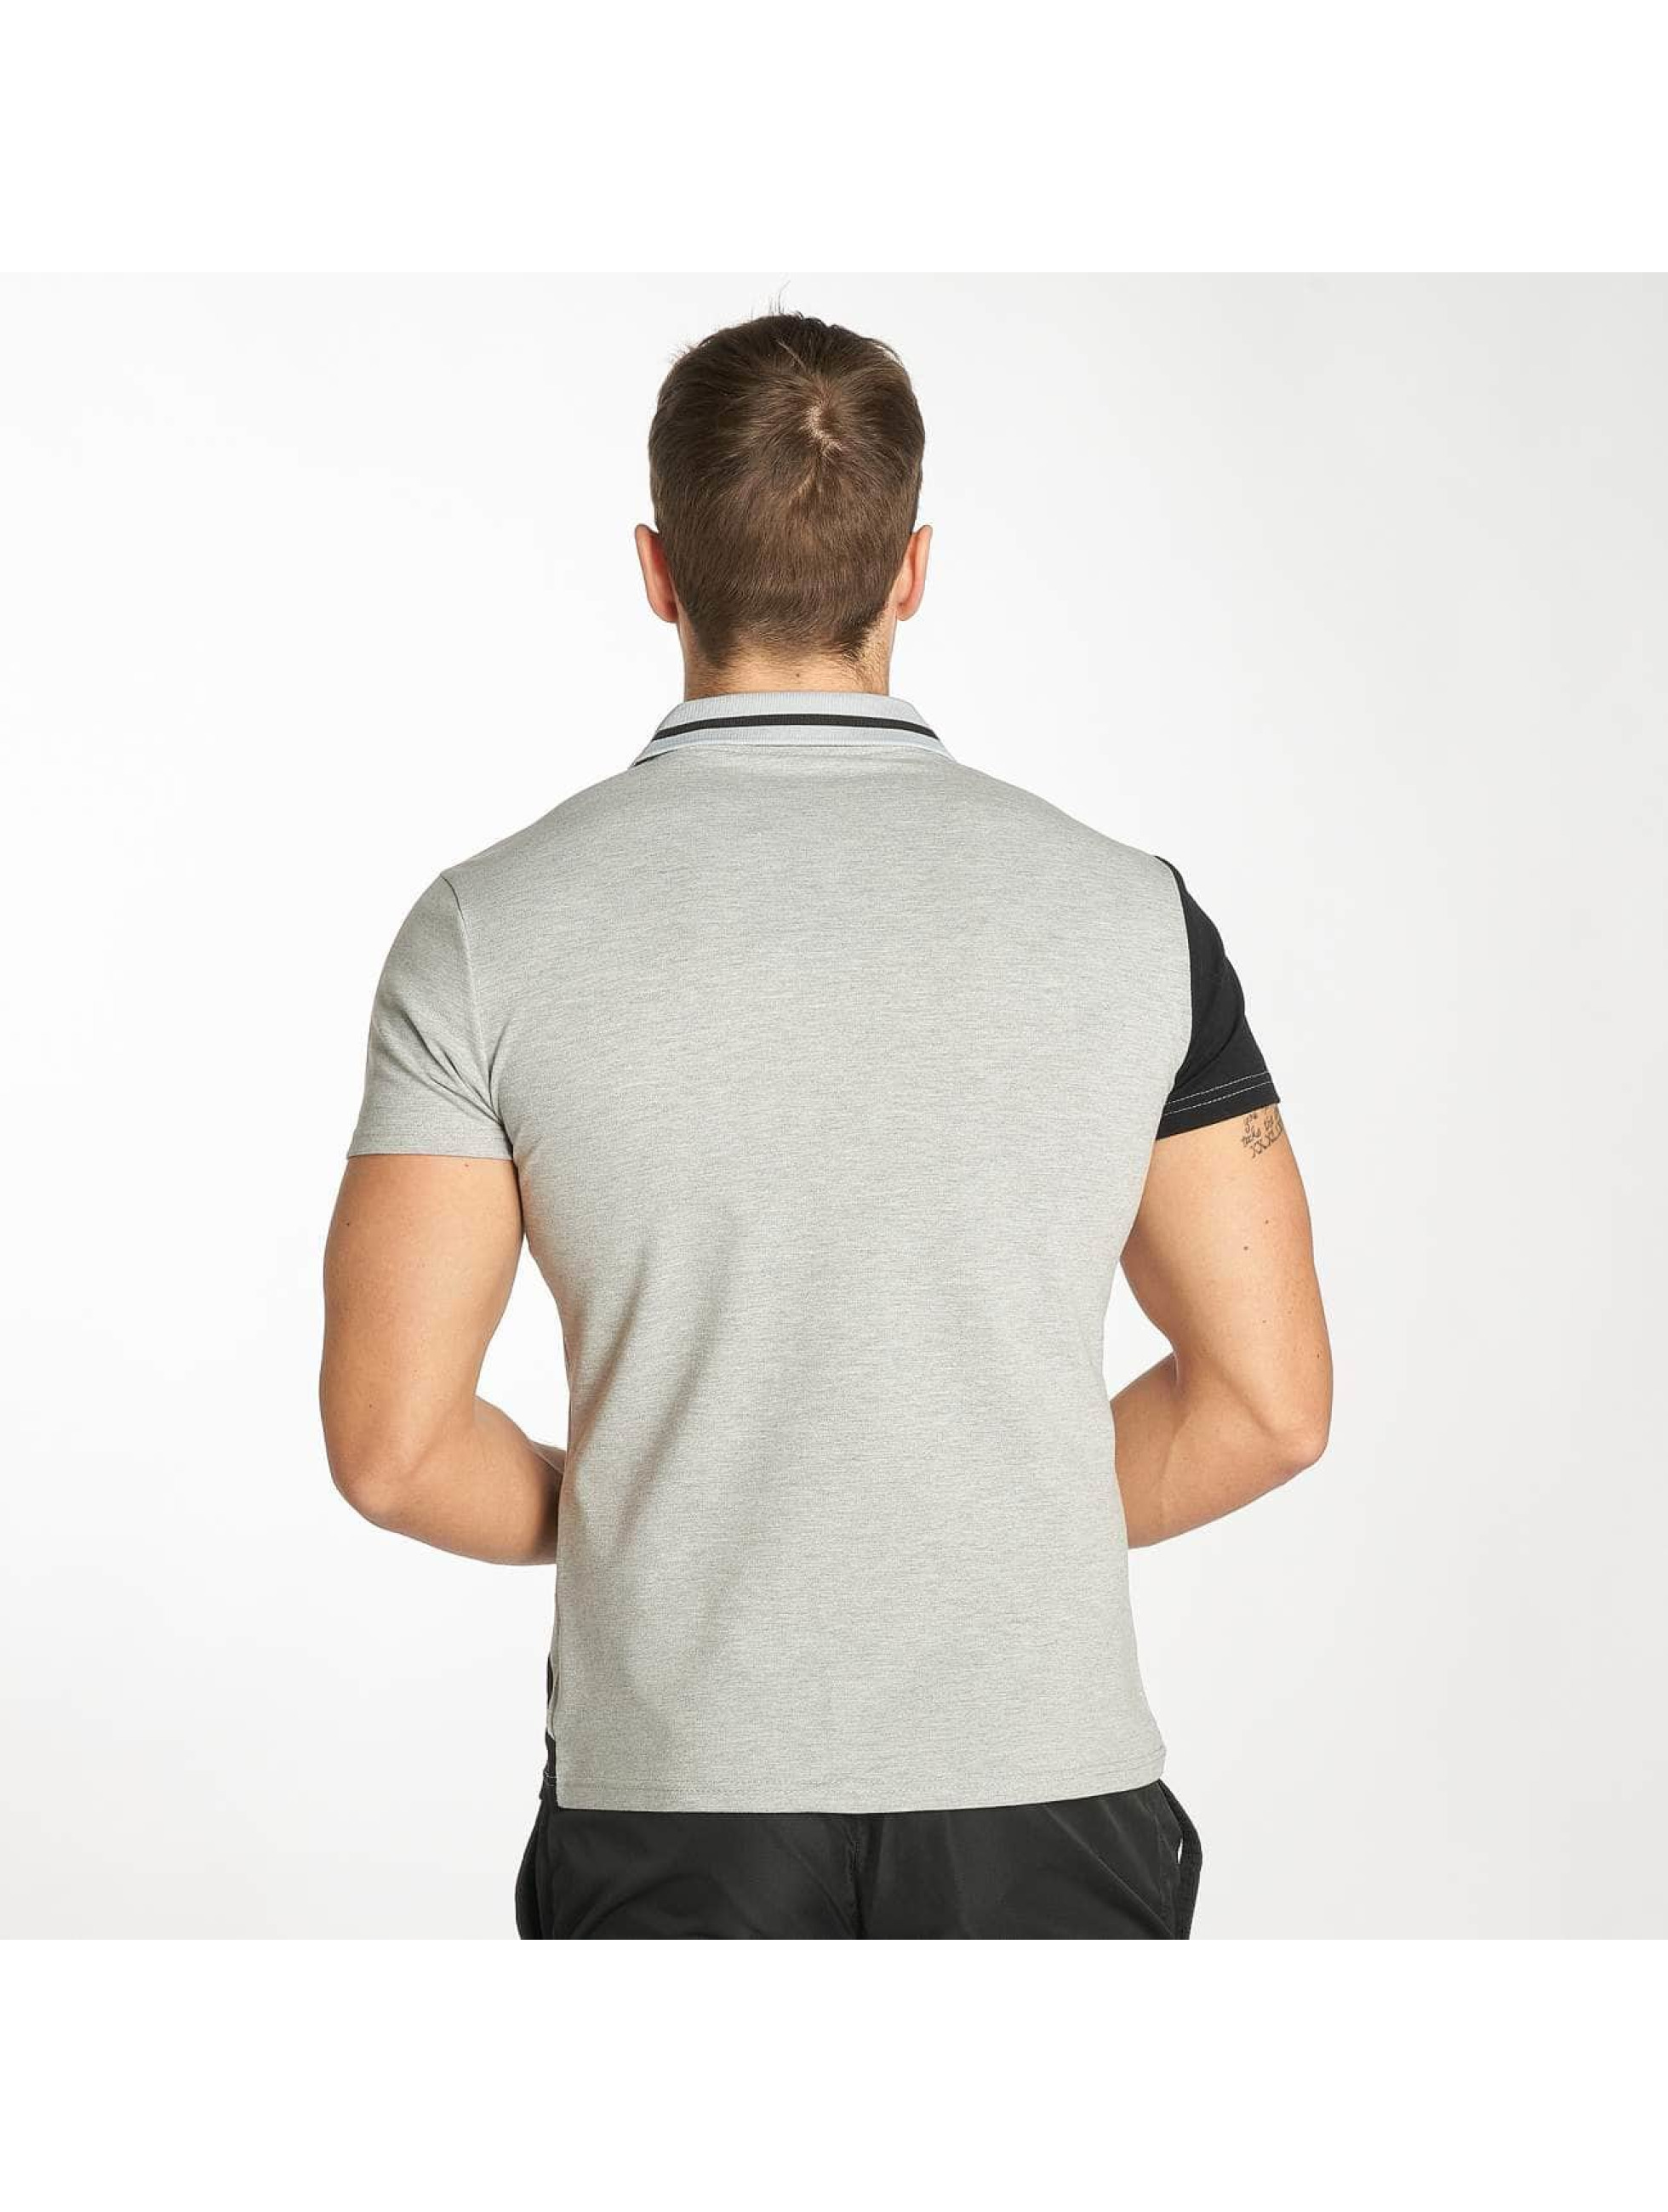 Zayne Paris Polo Stripe grigio